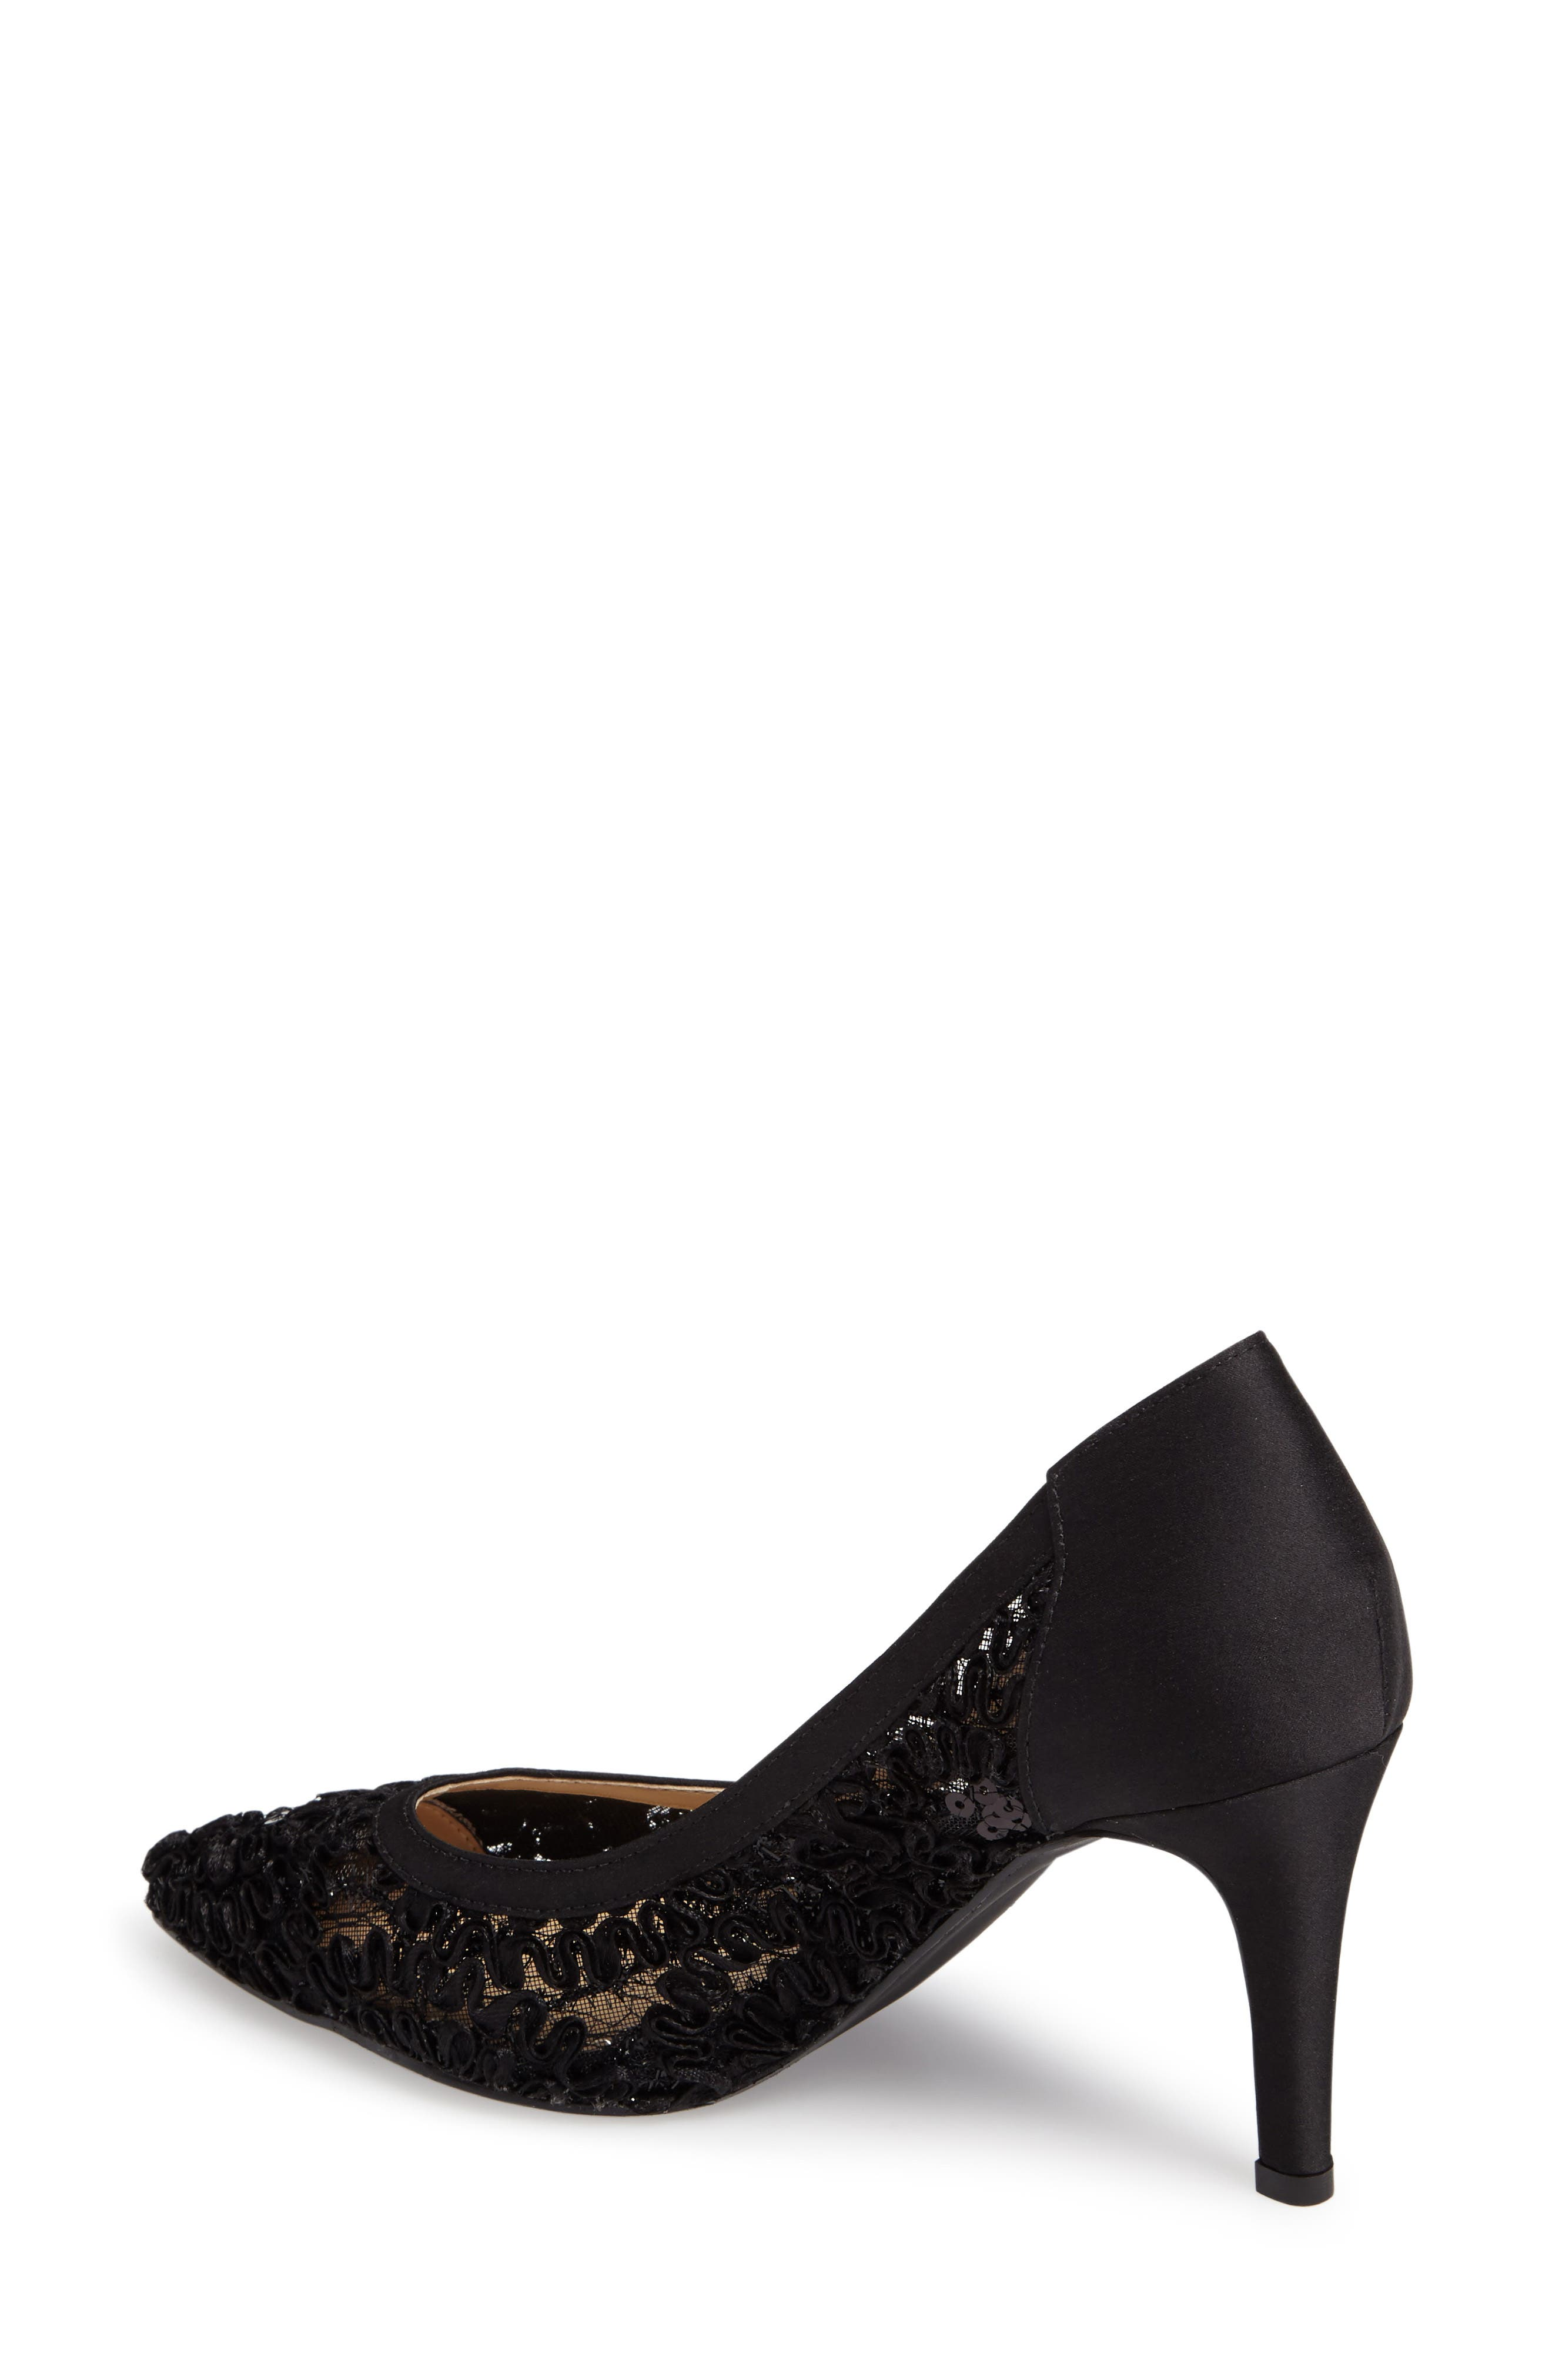 Camellia Pointy Toe Pump,                             Alternate thumbnail 2, color,                             BLACK LACE FABRIC